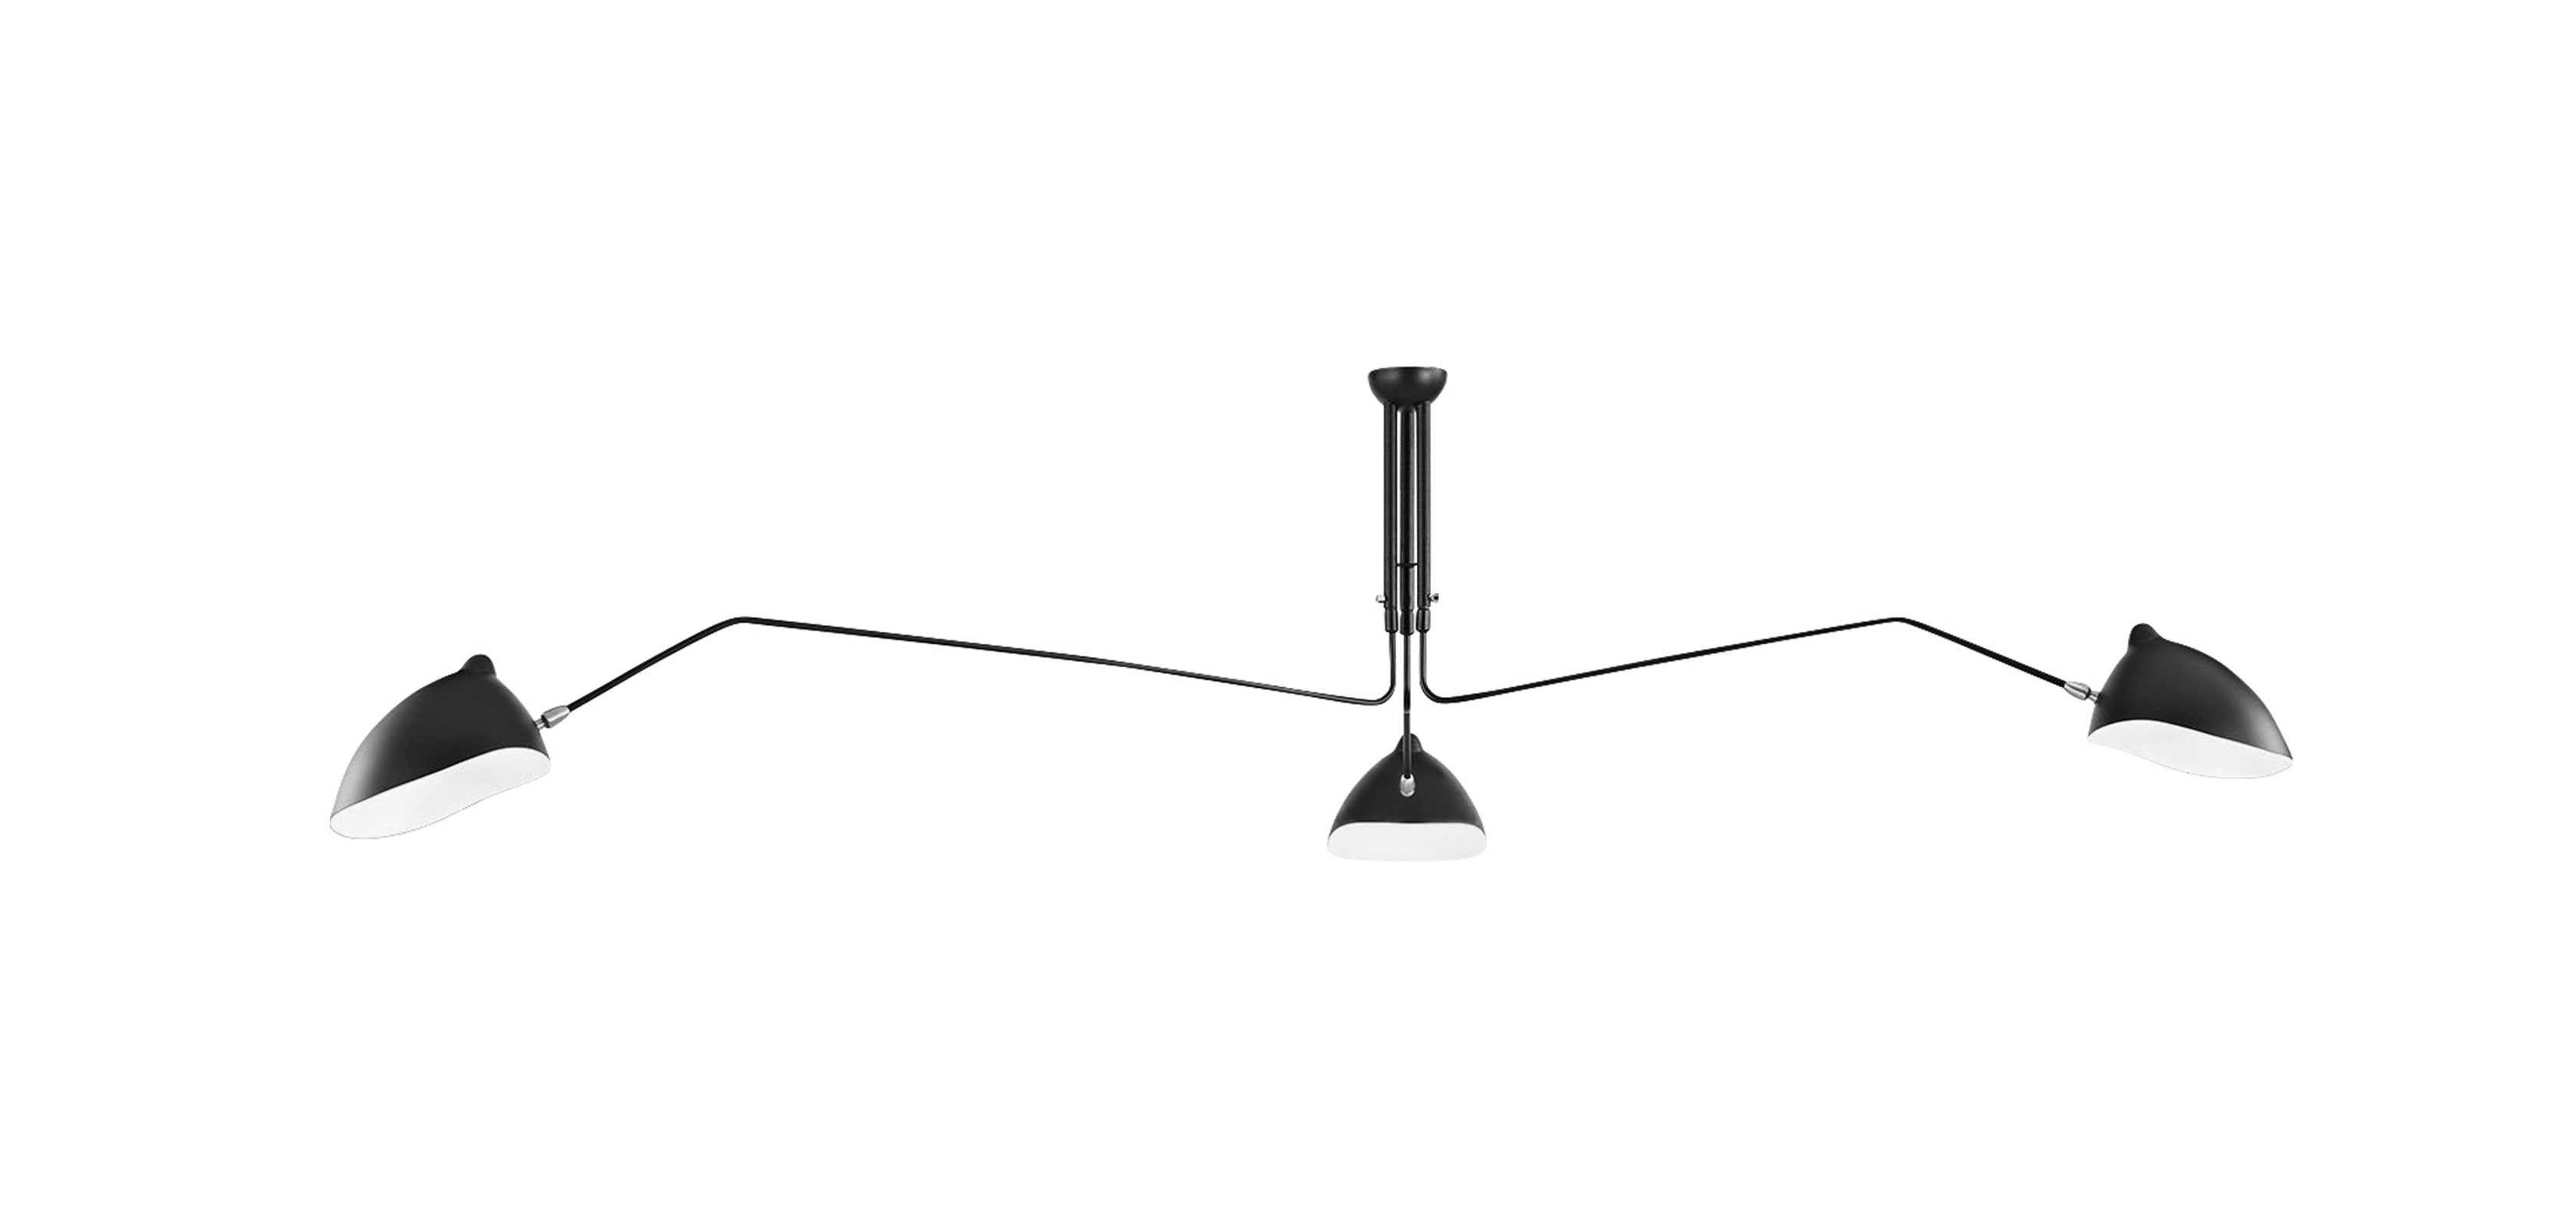 mcl r1 pendant lamp serge mouille style suspensions. Black Bedroom Furniture Sets. Home Design Ideas